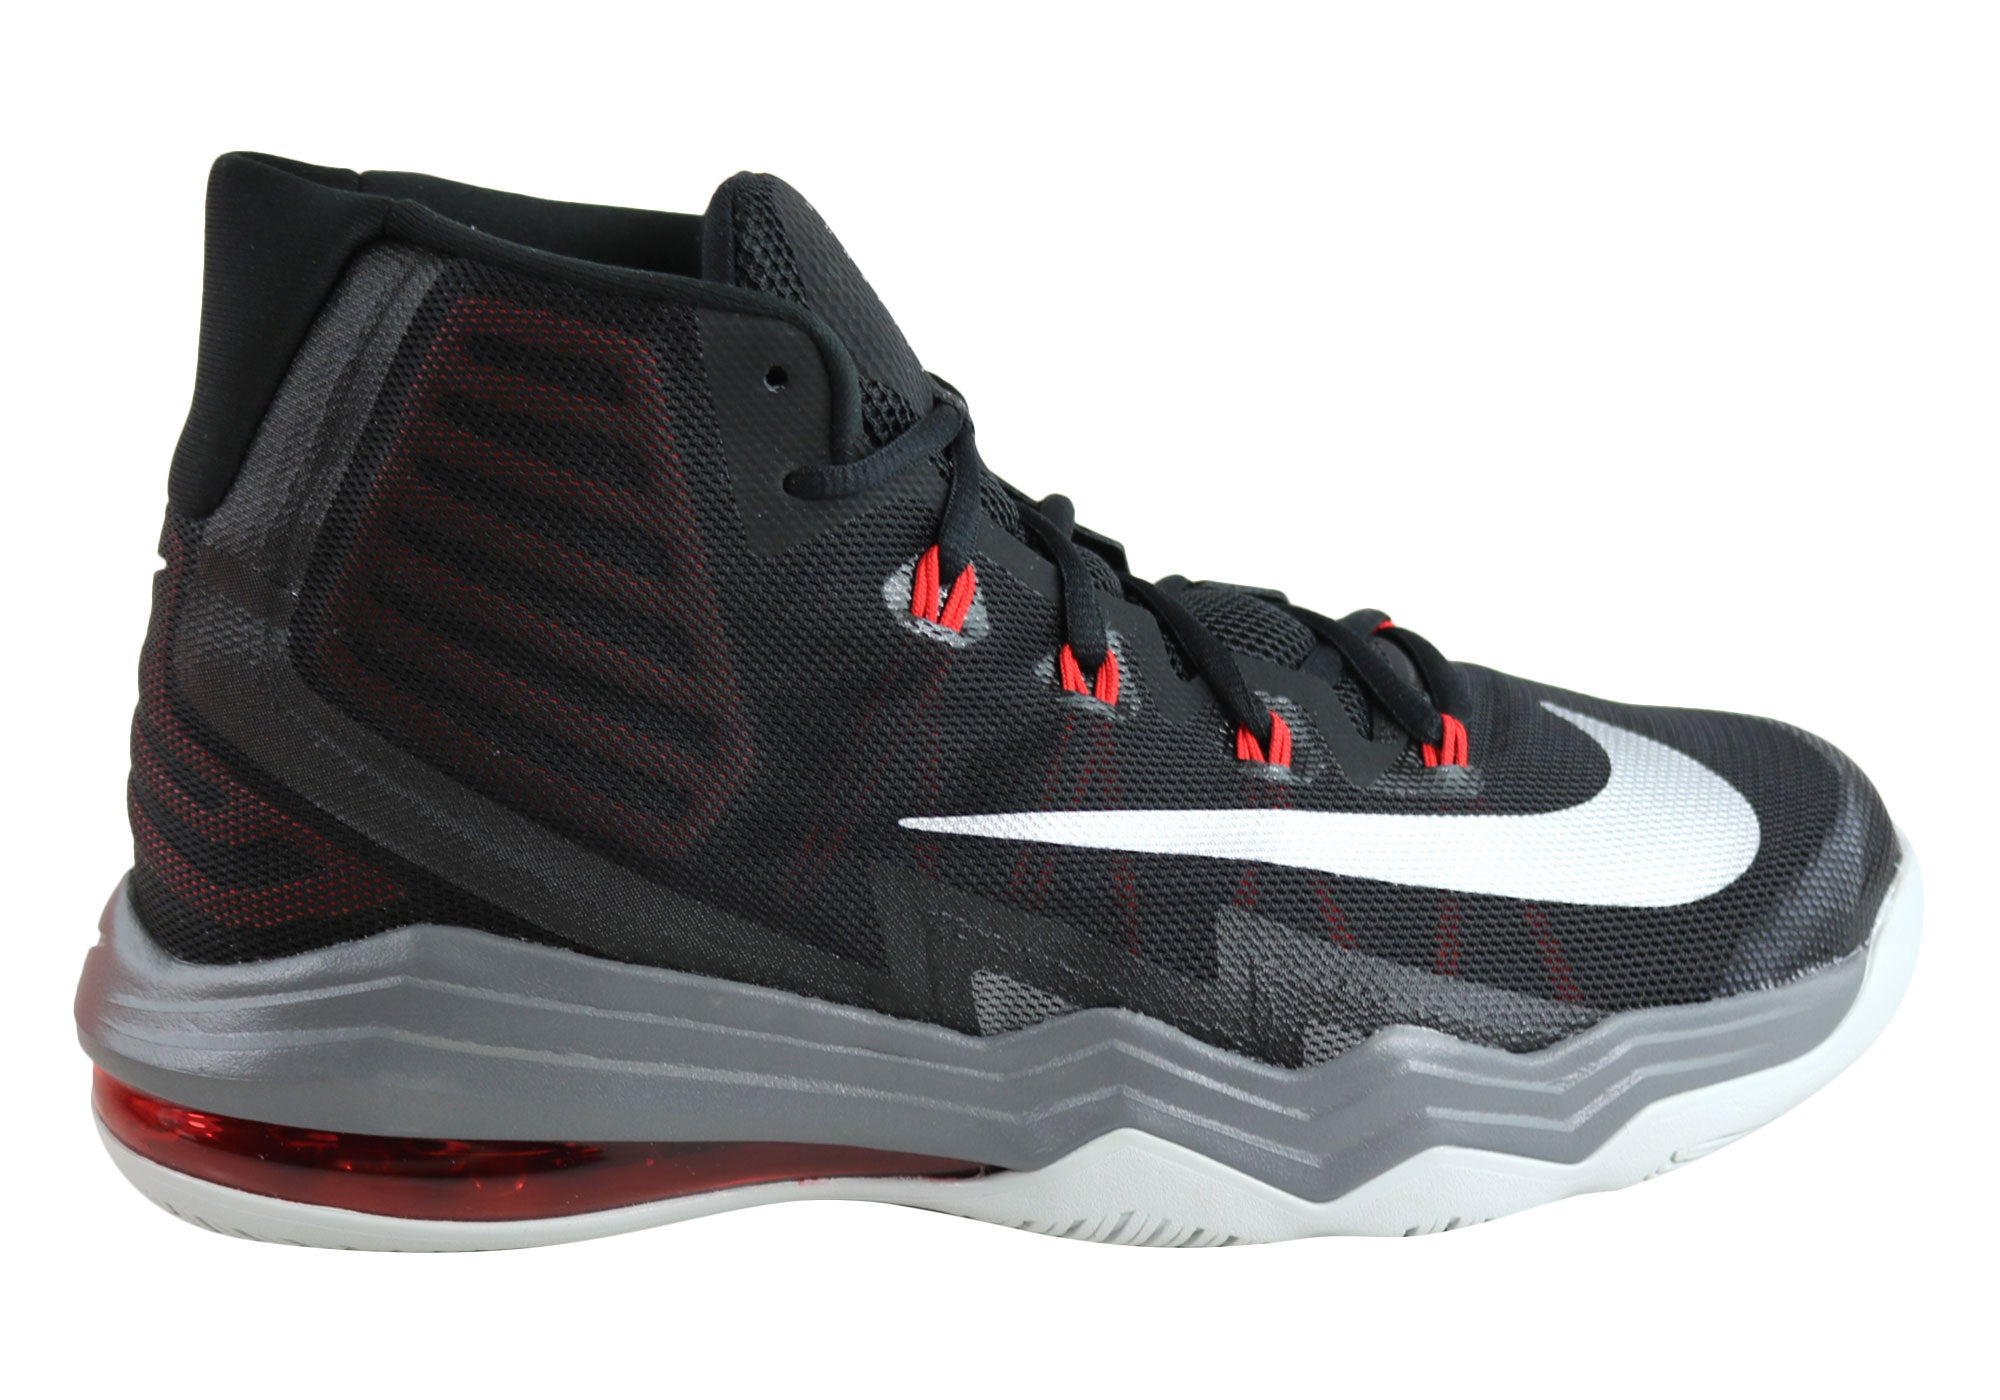 0a150b4657b54 Details about New Mens Nike Air Max Audacity 2016 Basketball Shoes